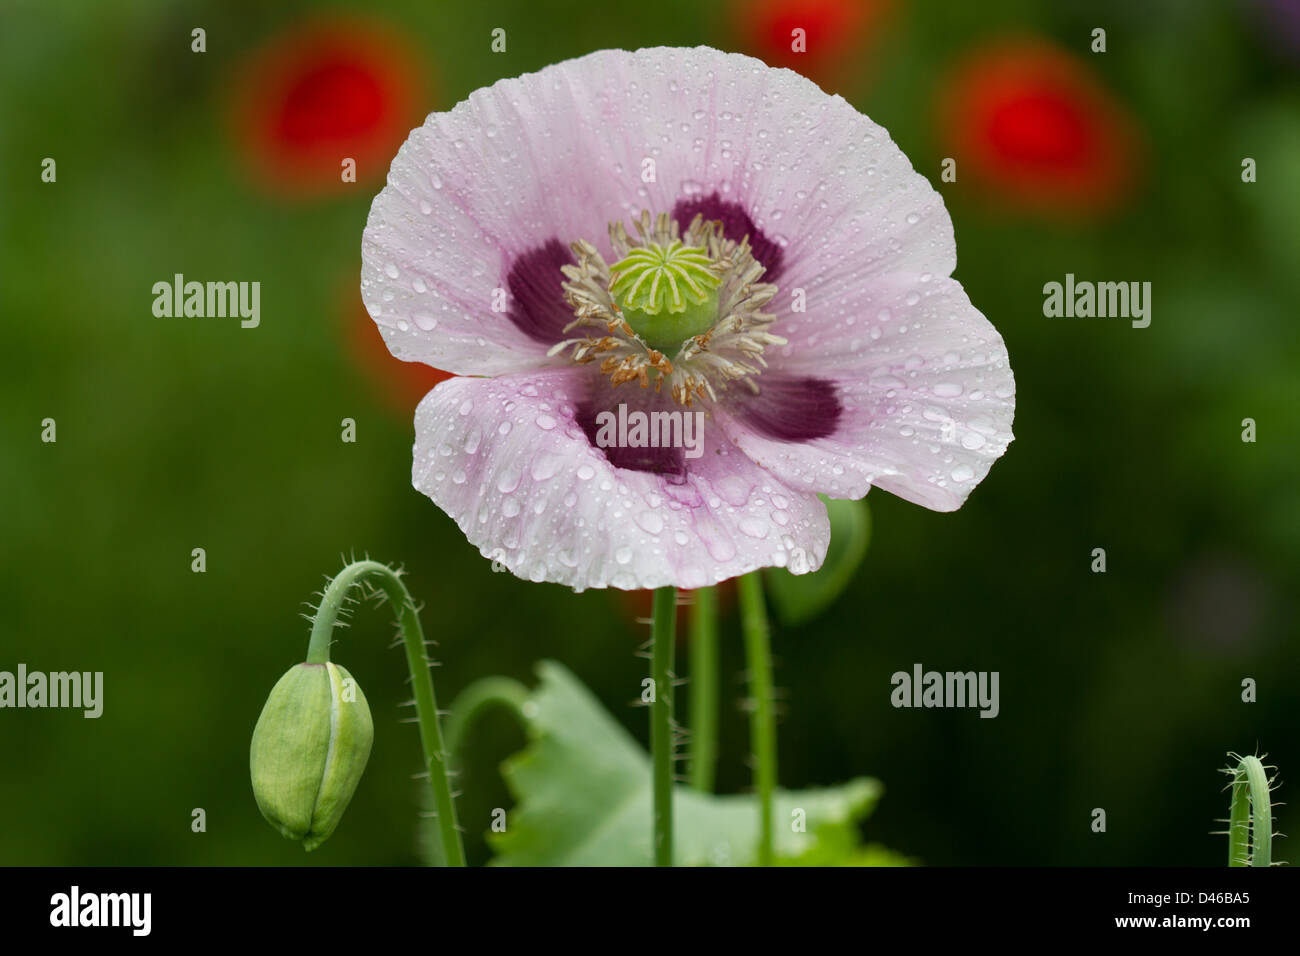 Purple And Lilac Opium Poppy Flower In Garden In England Stock Photo